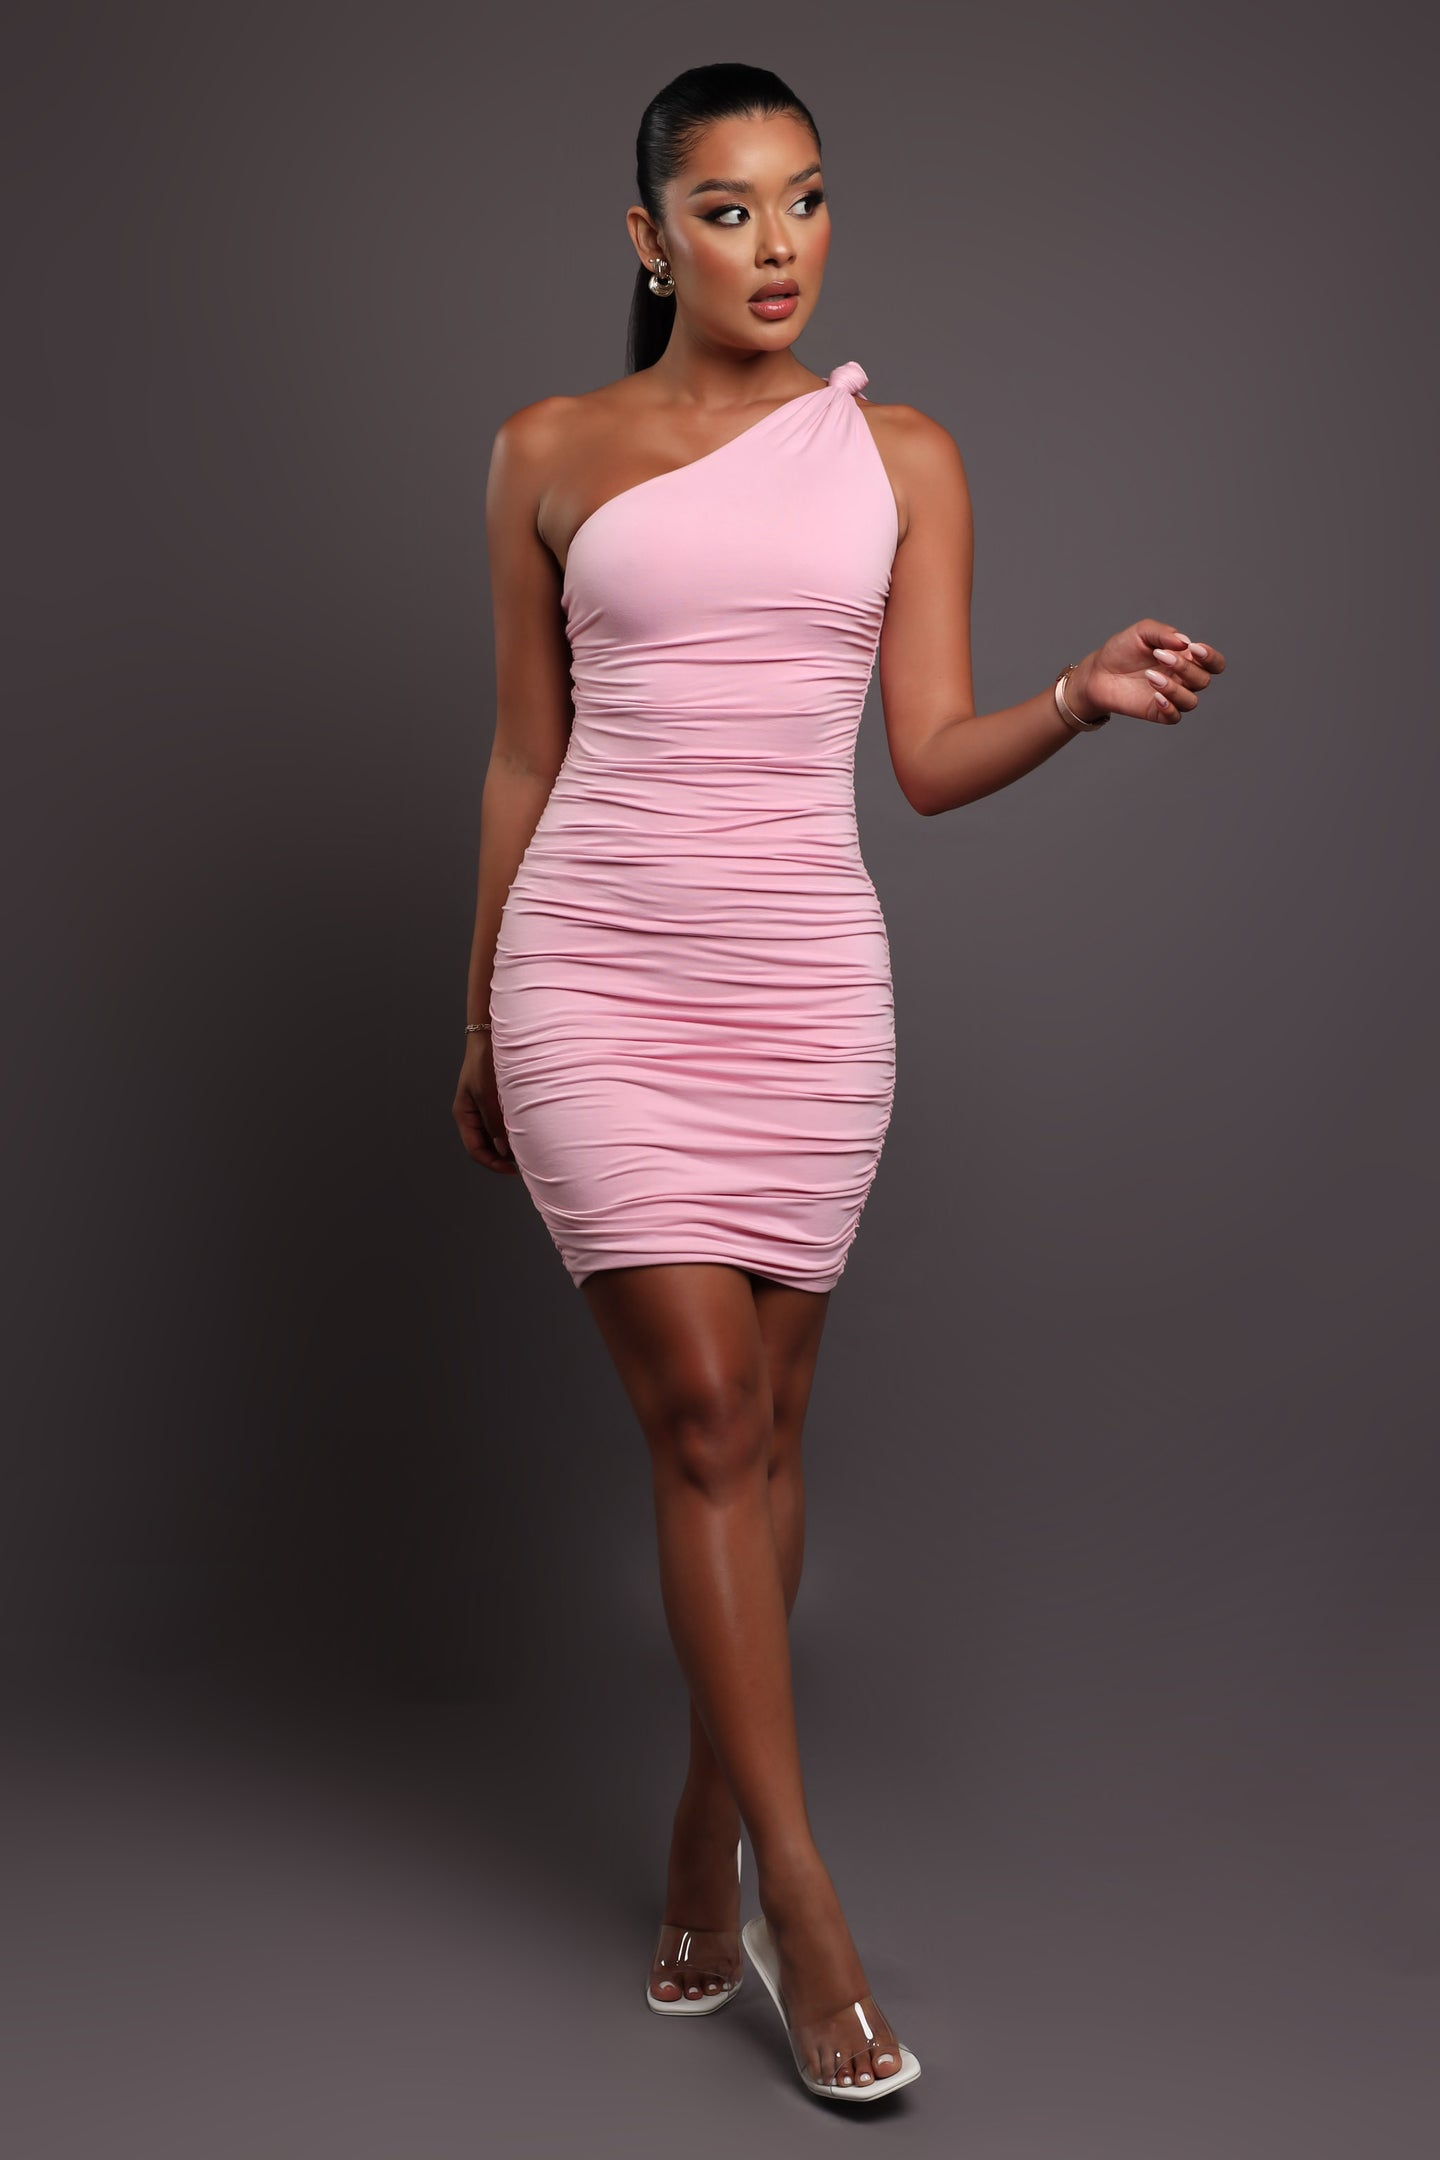 Sparks Fly Two Piece Pant Set - Black